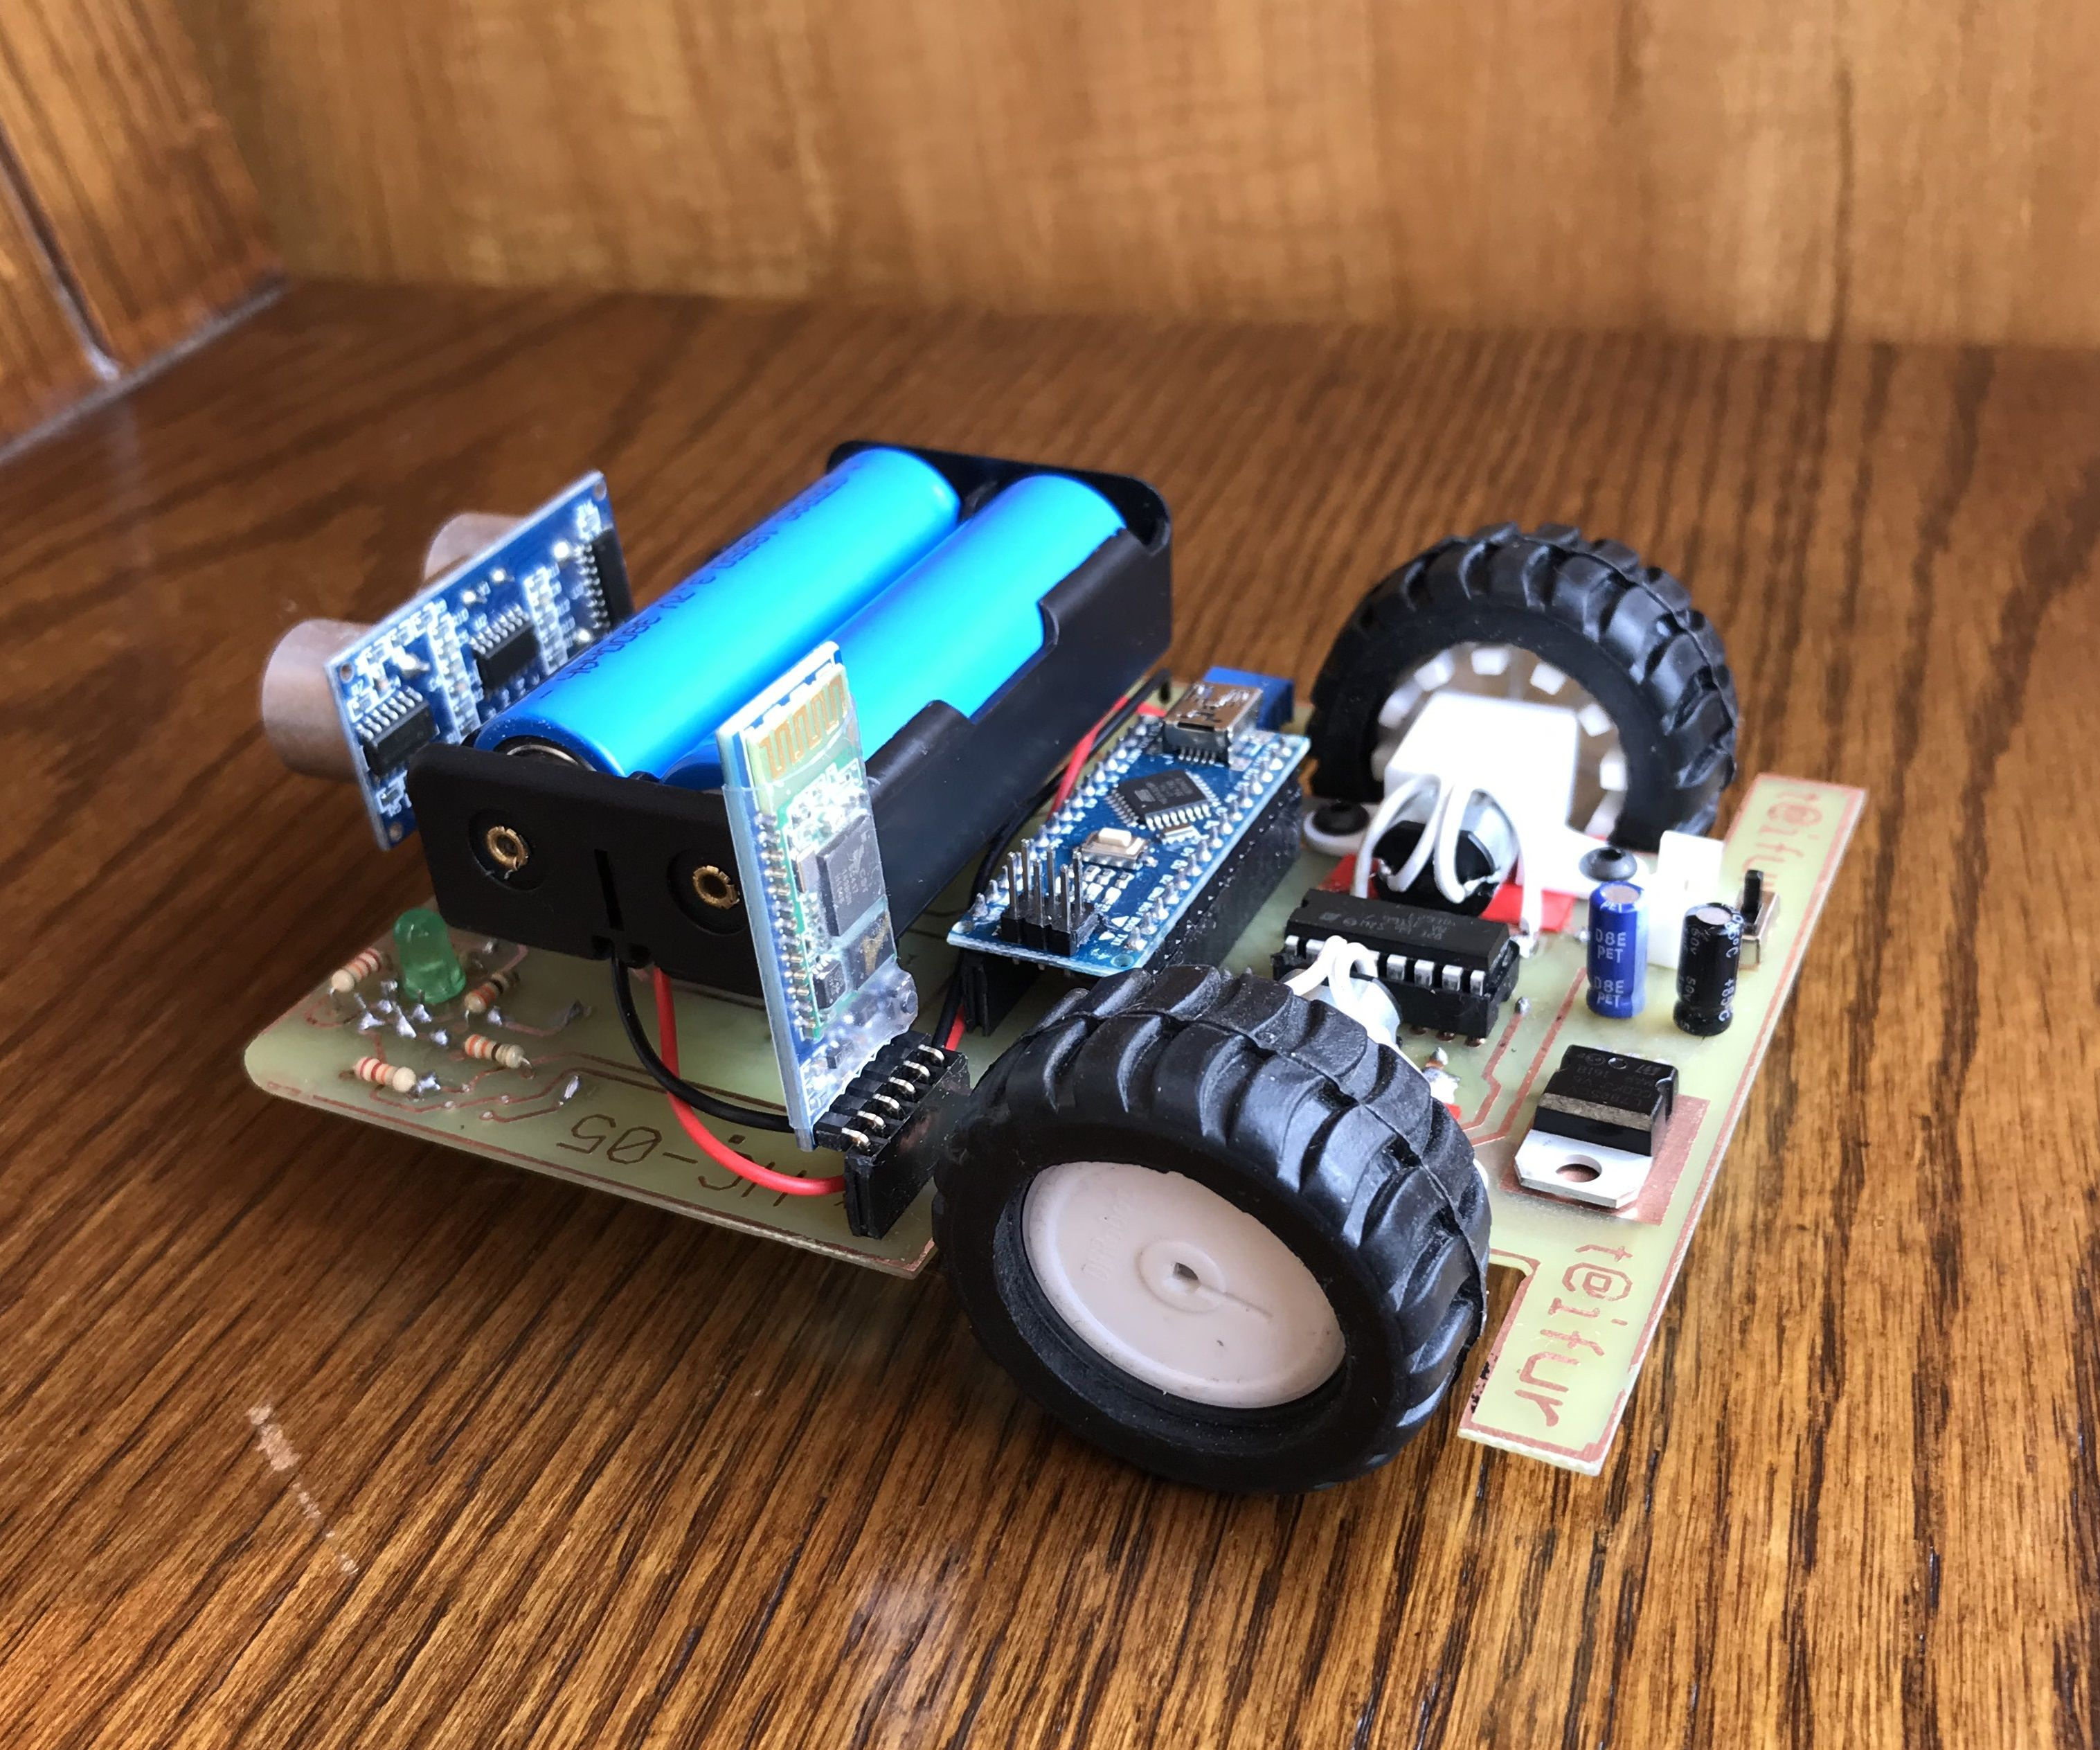 PCB BOT (Line Follower, Obstacle Avoiding, Remote Control)